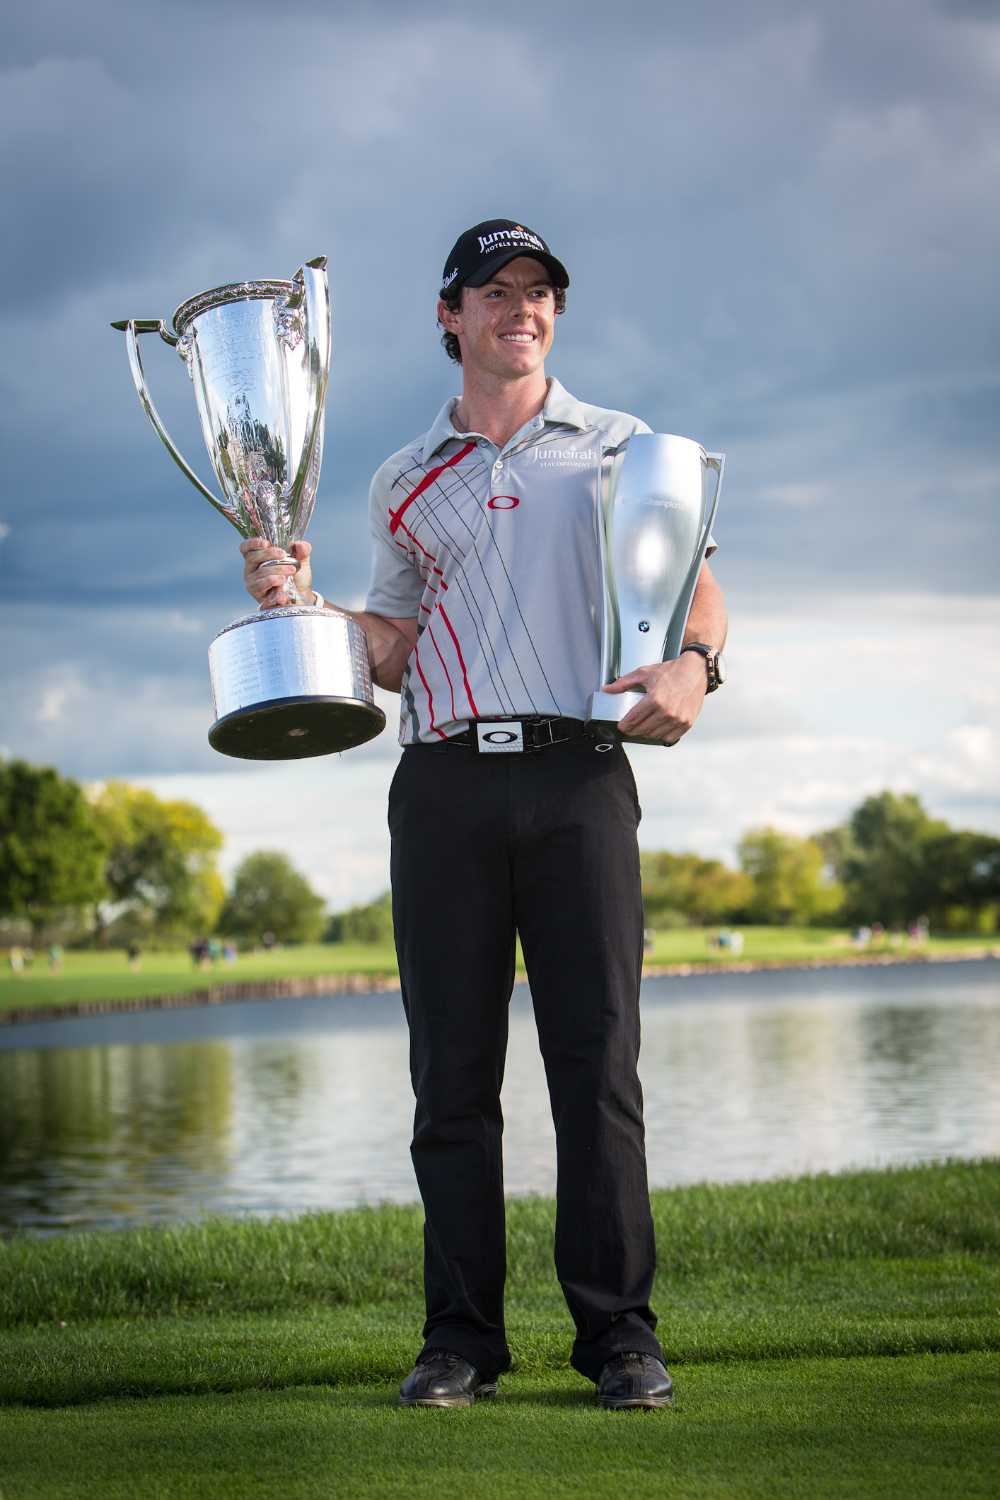 Bmw Championship 2020 The Top 70 Players On The Pga Tour Tee Off In Chicago With Qualification For The Season Finale Automobilsport Com